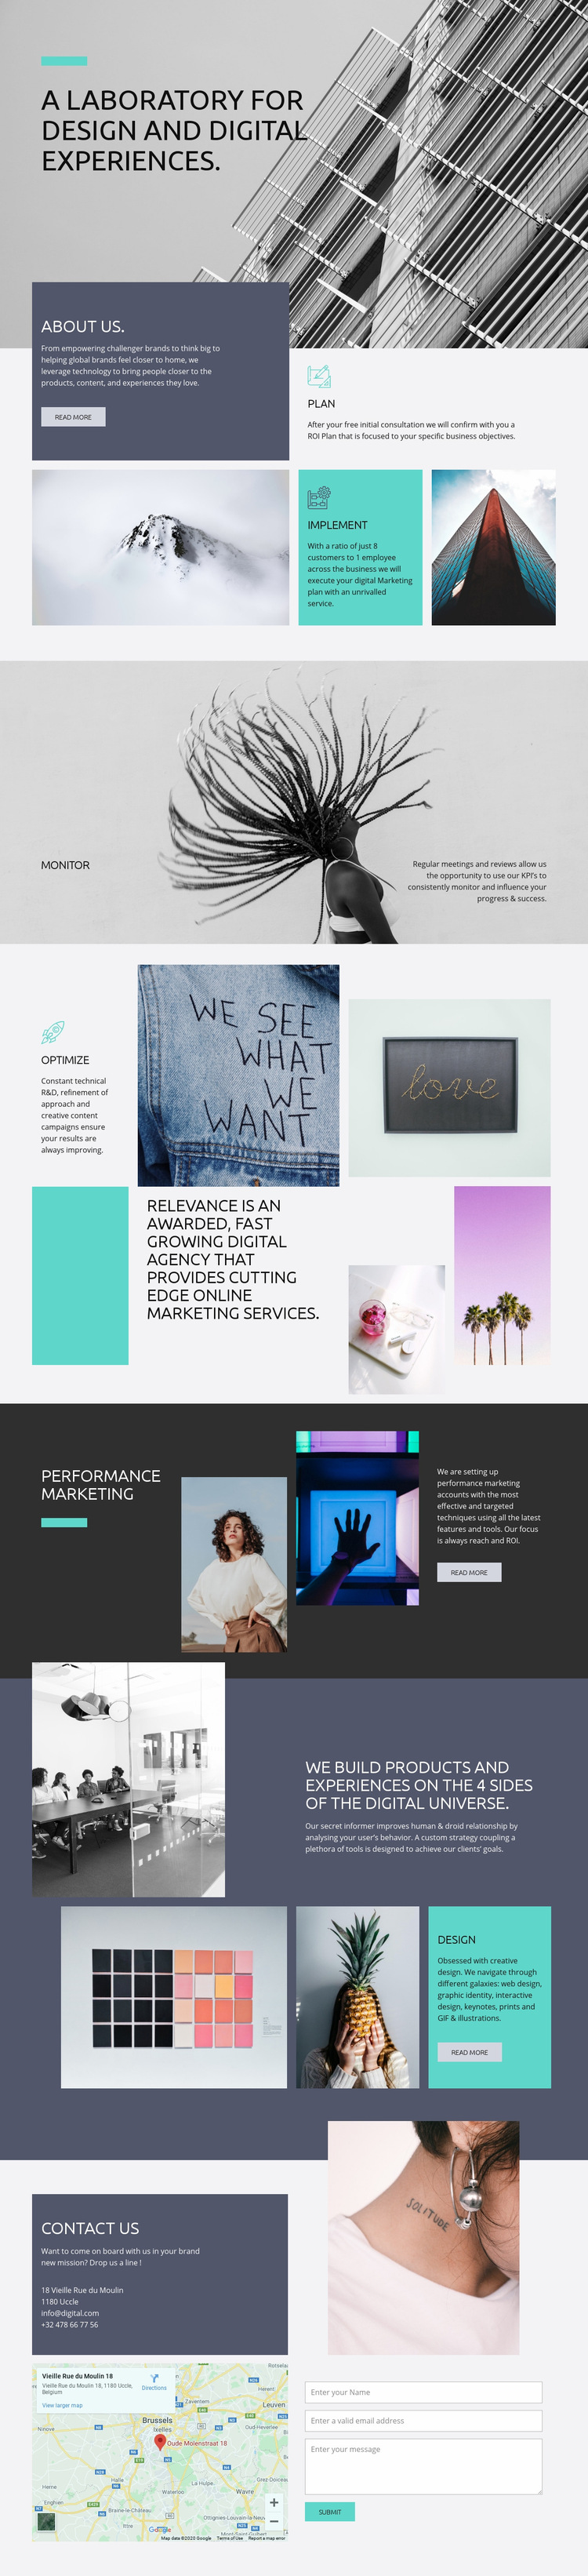 Creative lab for digital art Web Page Design